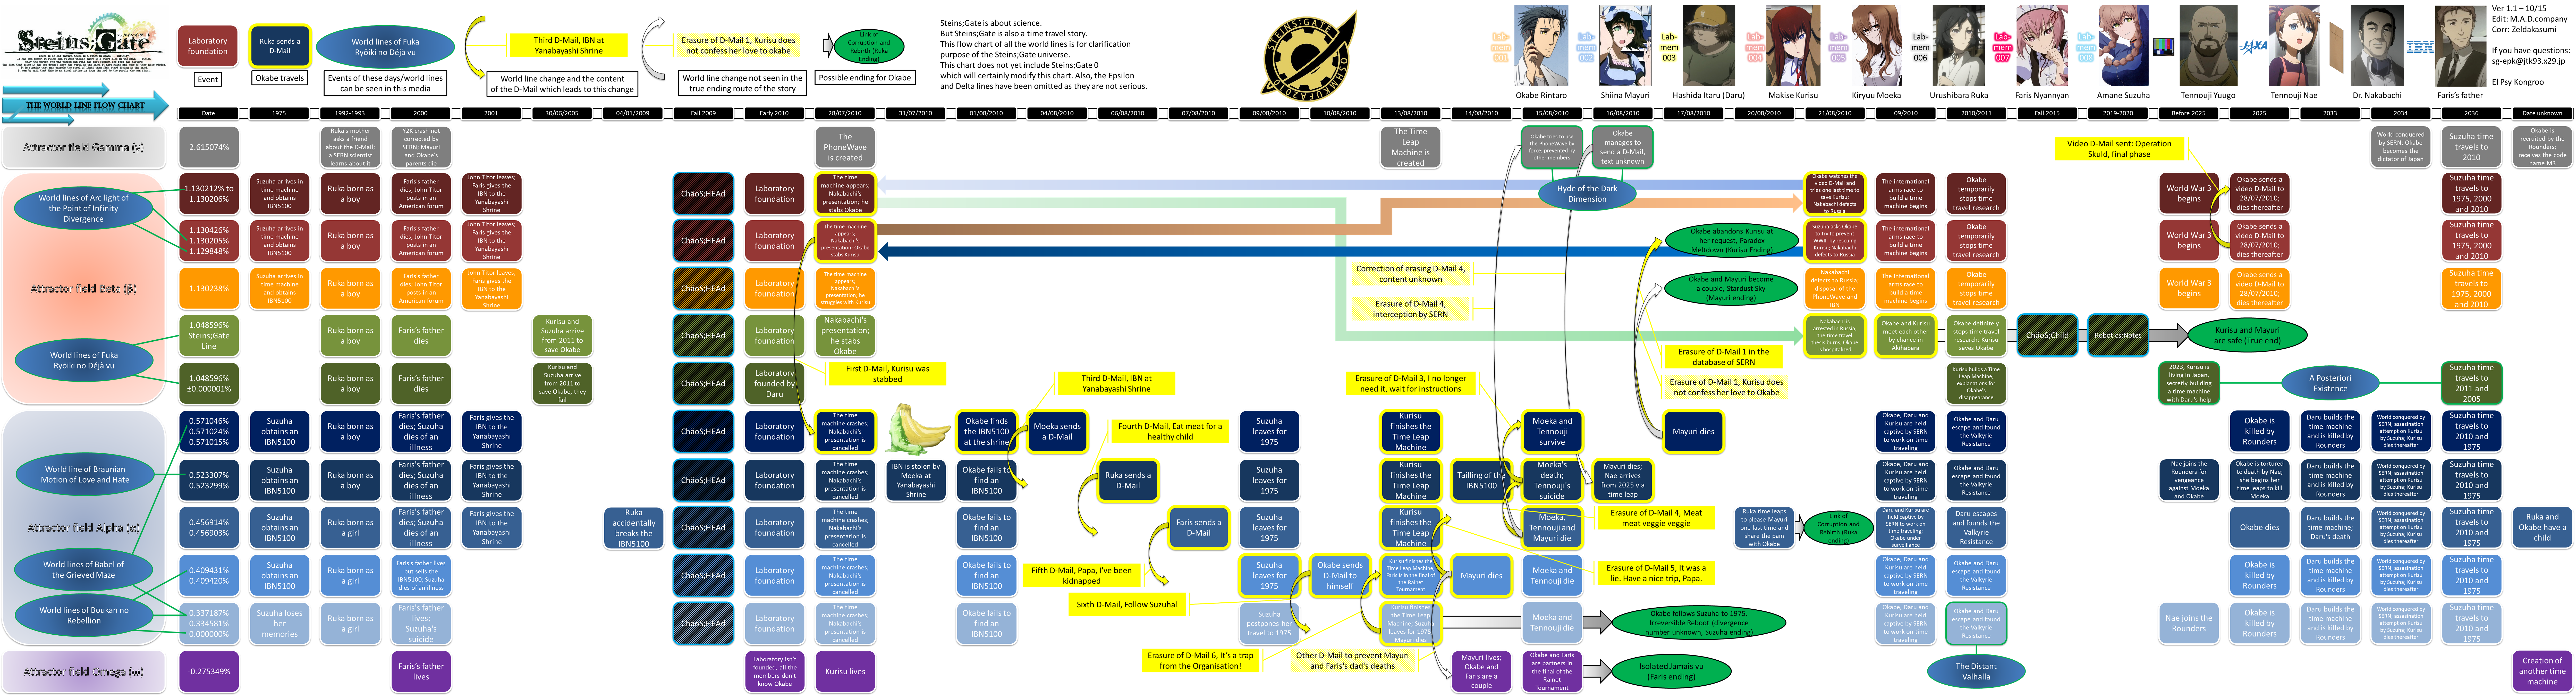 Drawing timelines flow chart. Timeline steins gate wiki